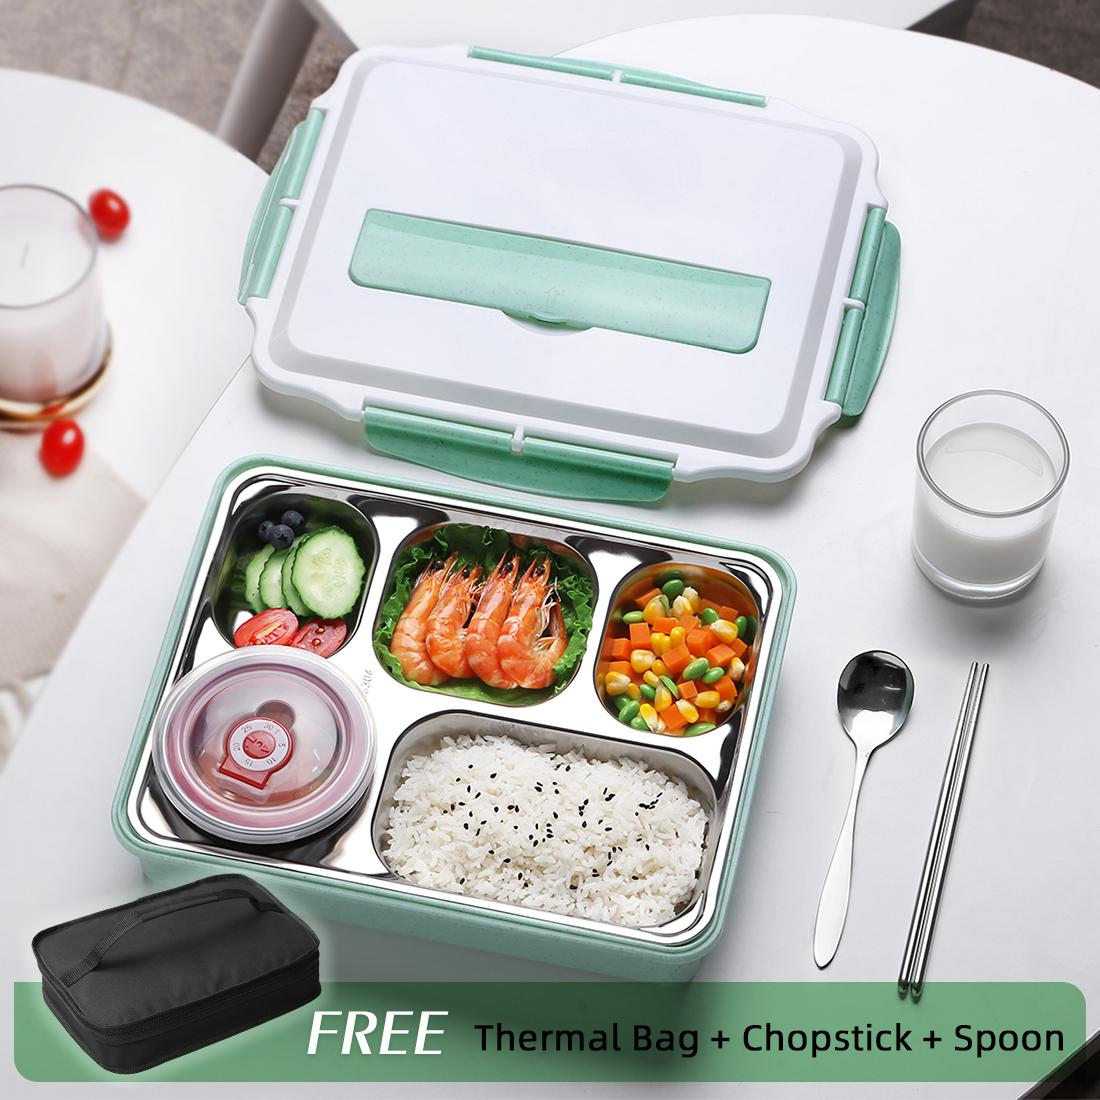 28b424f30179 ONEISALL Thermal Lunch Box With Bag Set Stainless Steel Kid Adult Bento  Boxs Leak-proof Food Container Portable Picnic Storage (Free Bag+ Spoon)